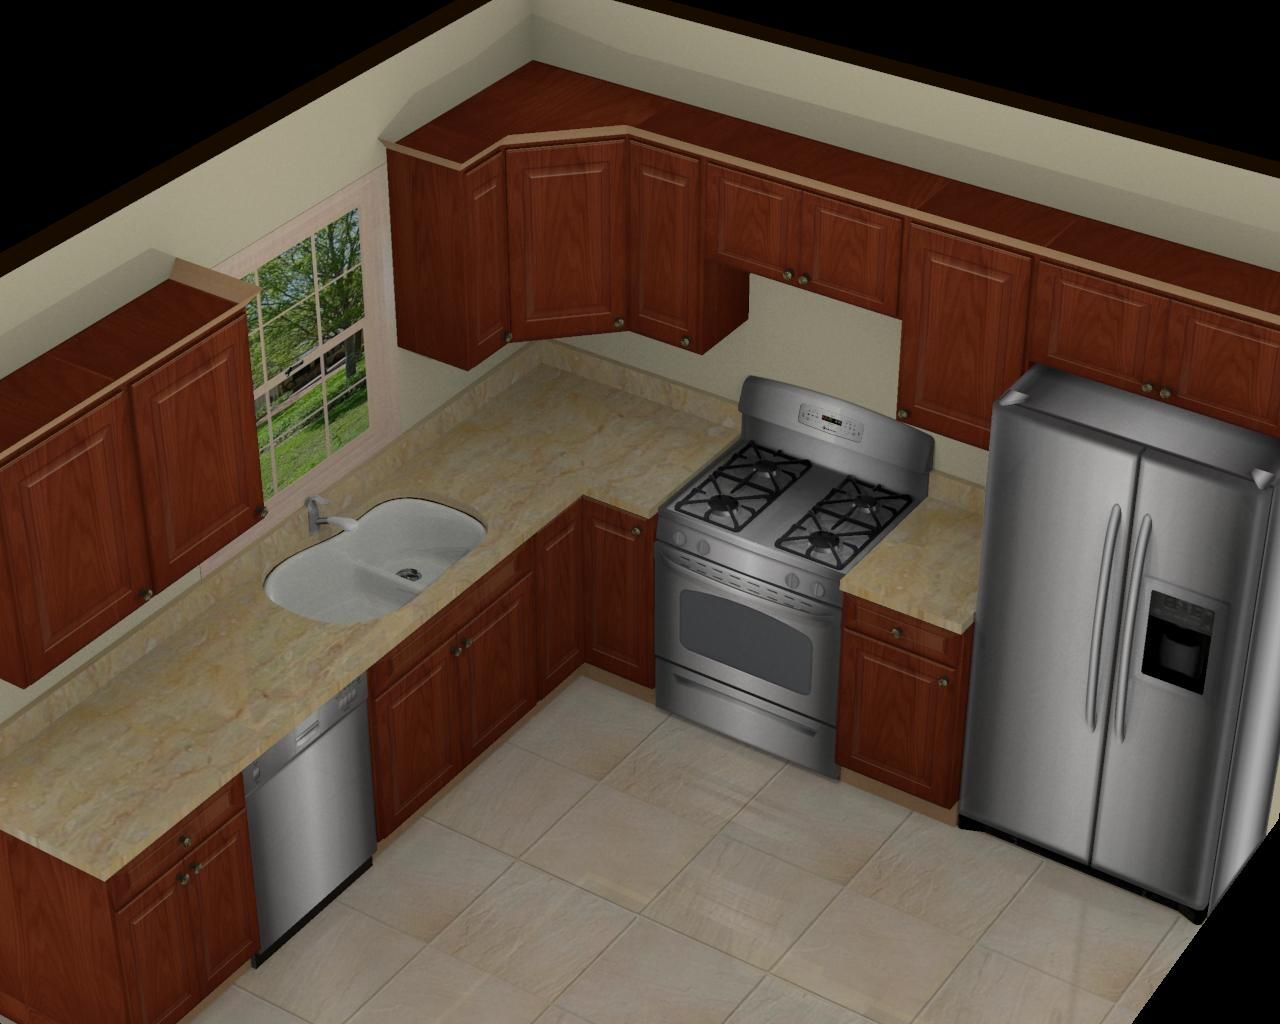 10x10 Office Design Kitchen Great 10x10 3d Kitchen Design With Brown Cabinet